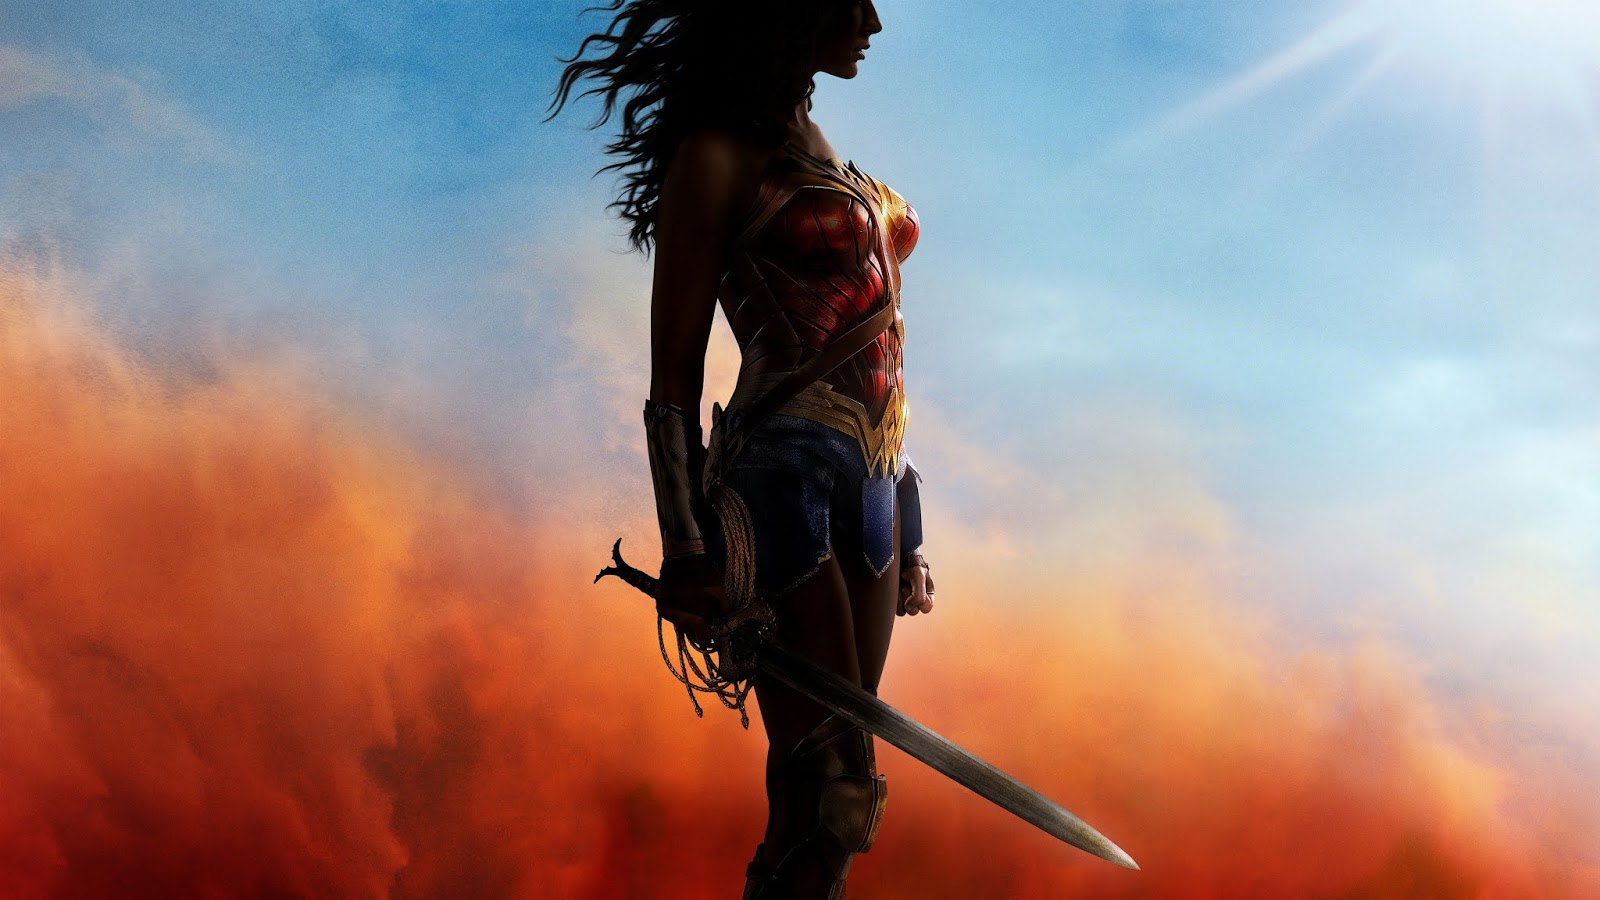 wonder-woman-wallpaper-4k-for-iphone